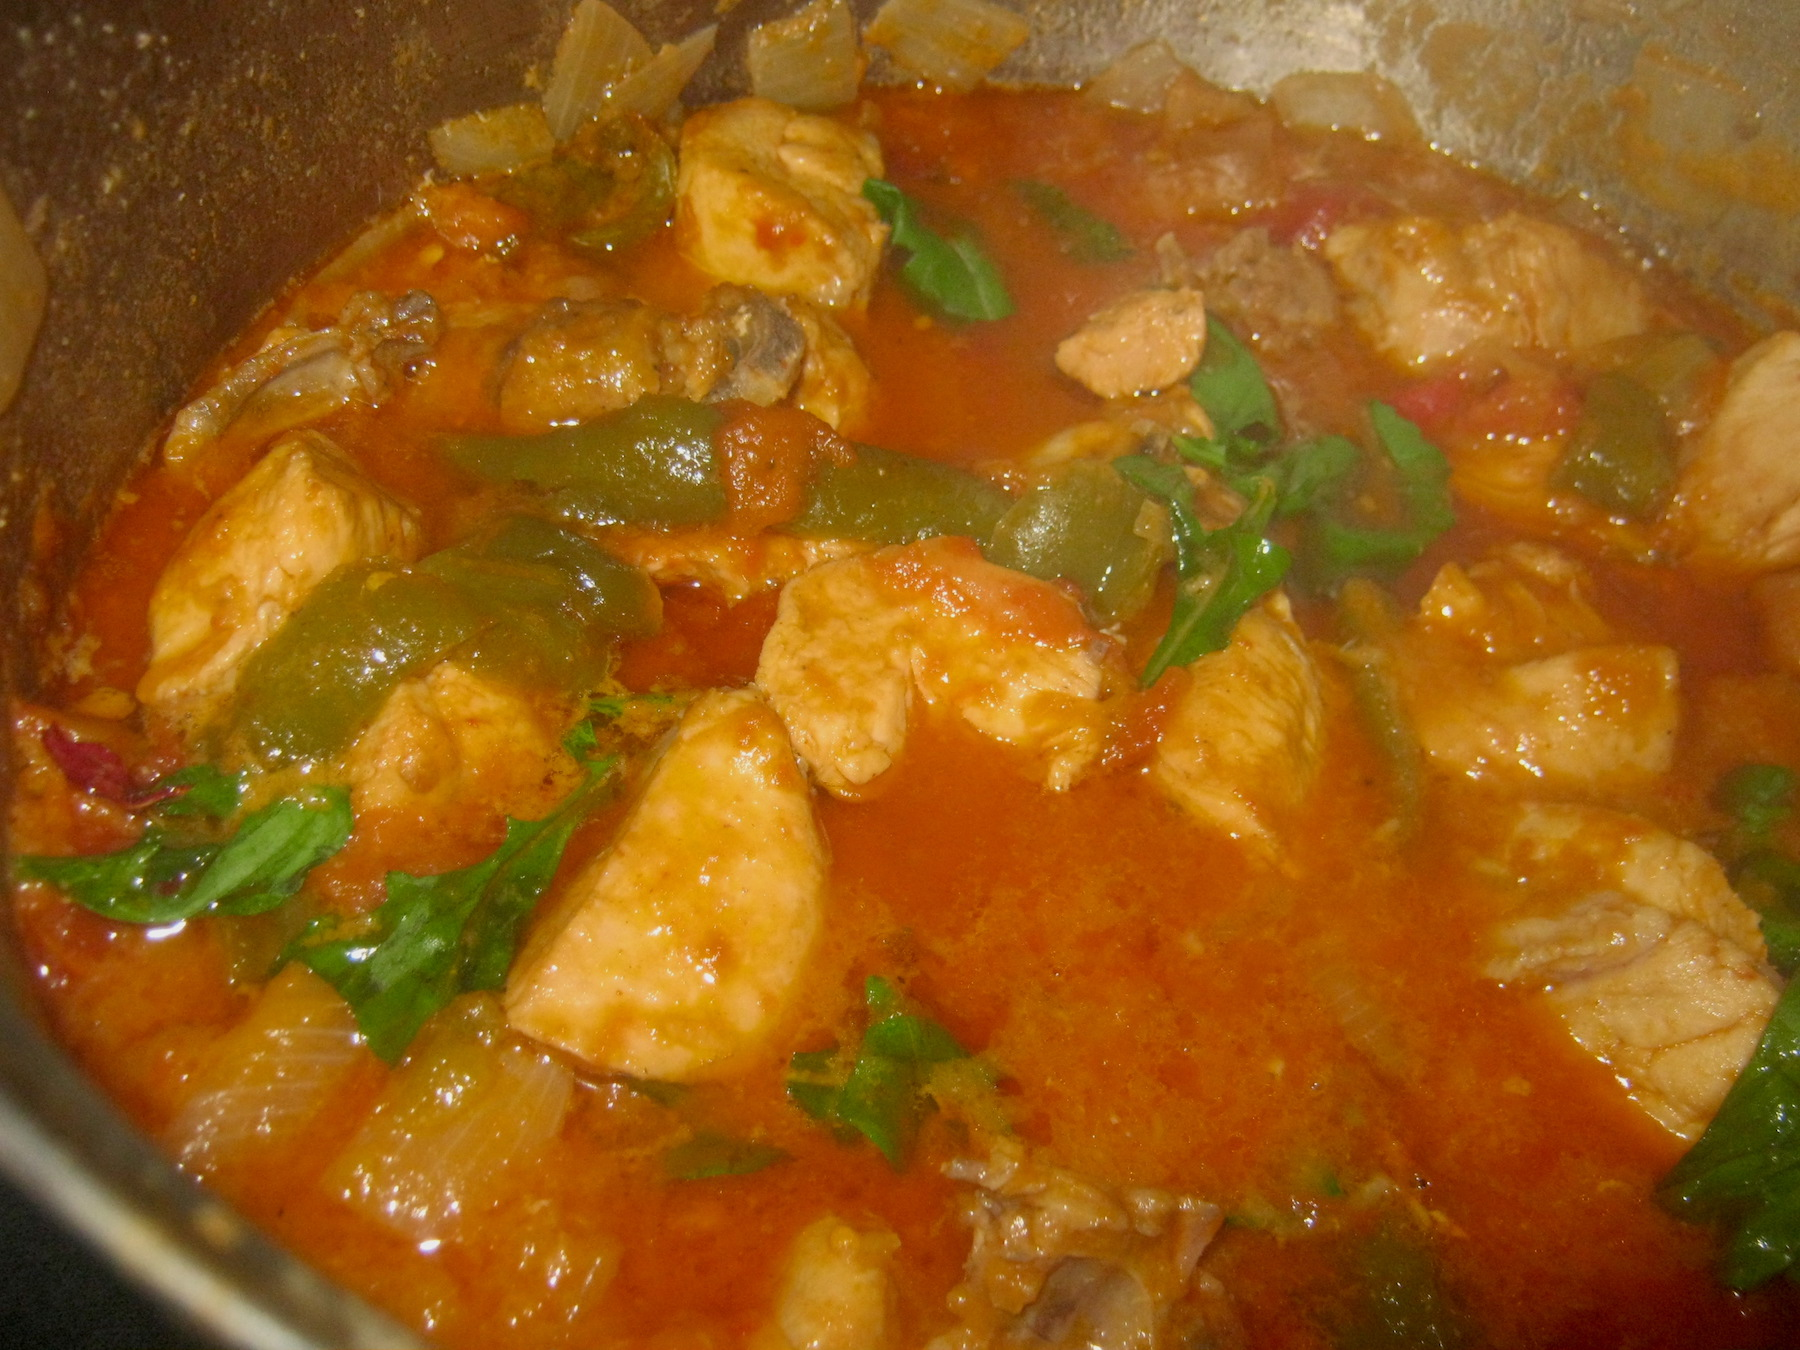 Chicken stew with sweet peppers in tomato gravy